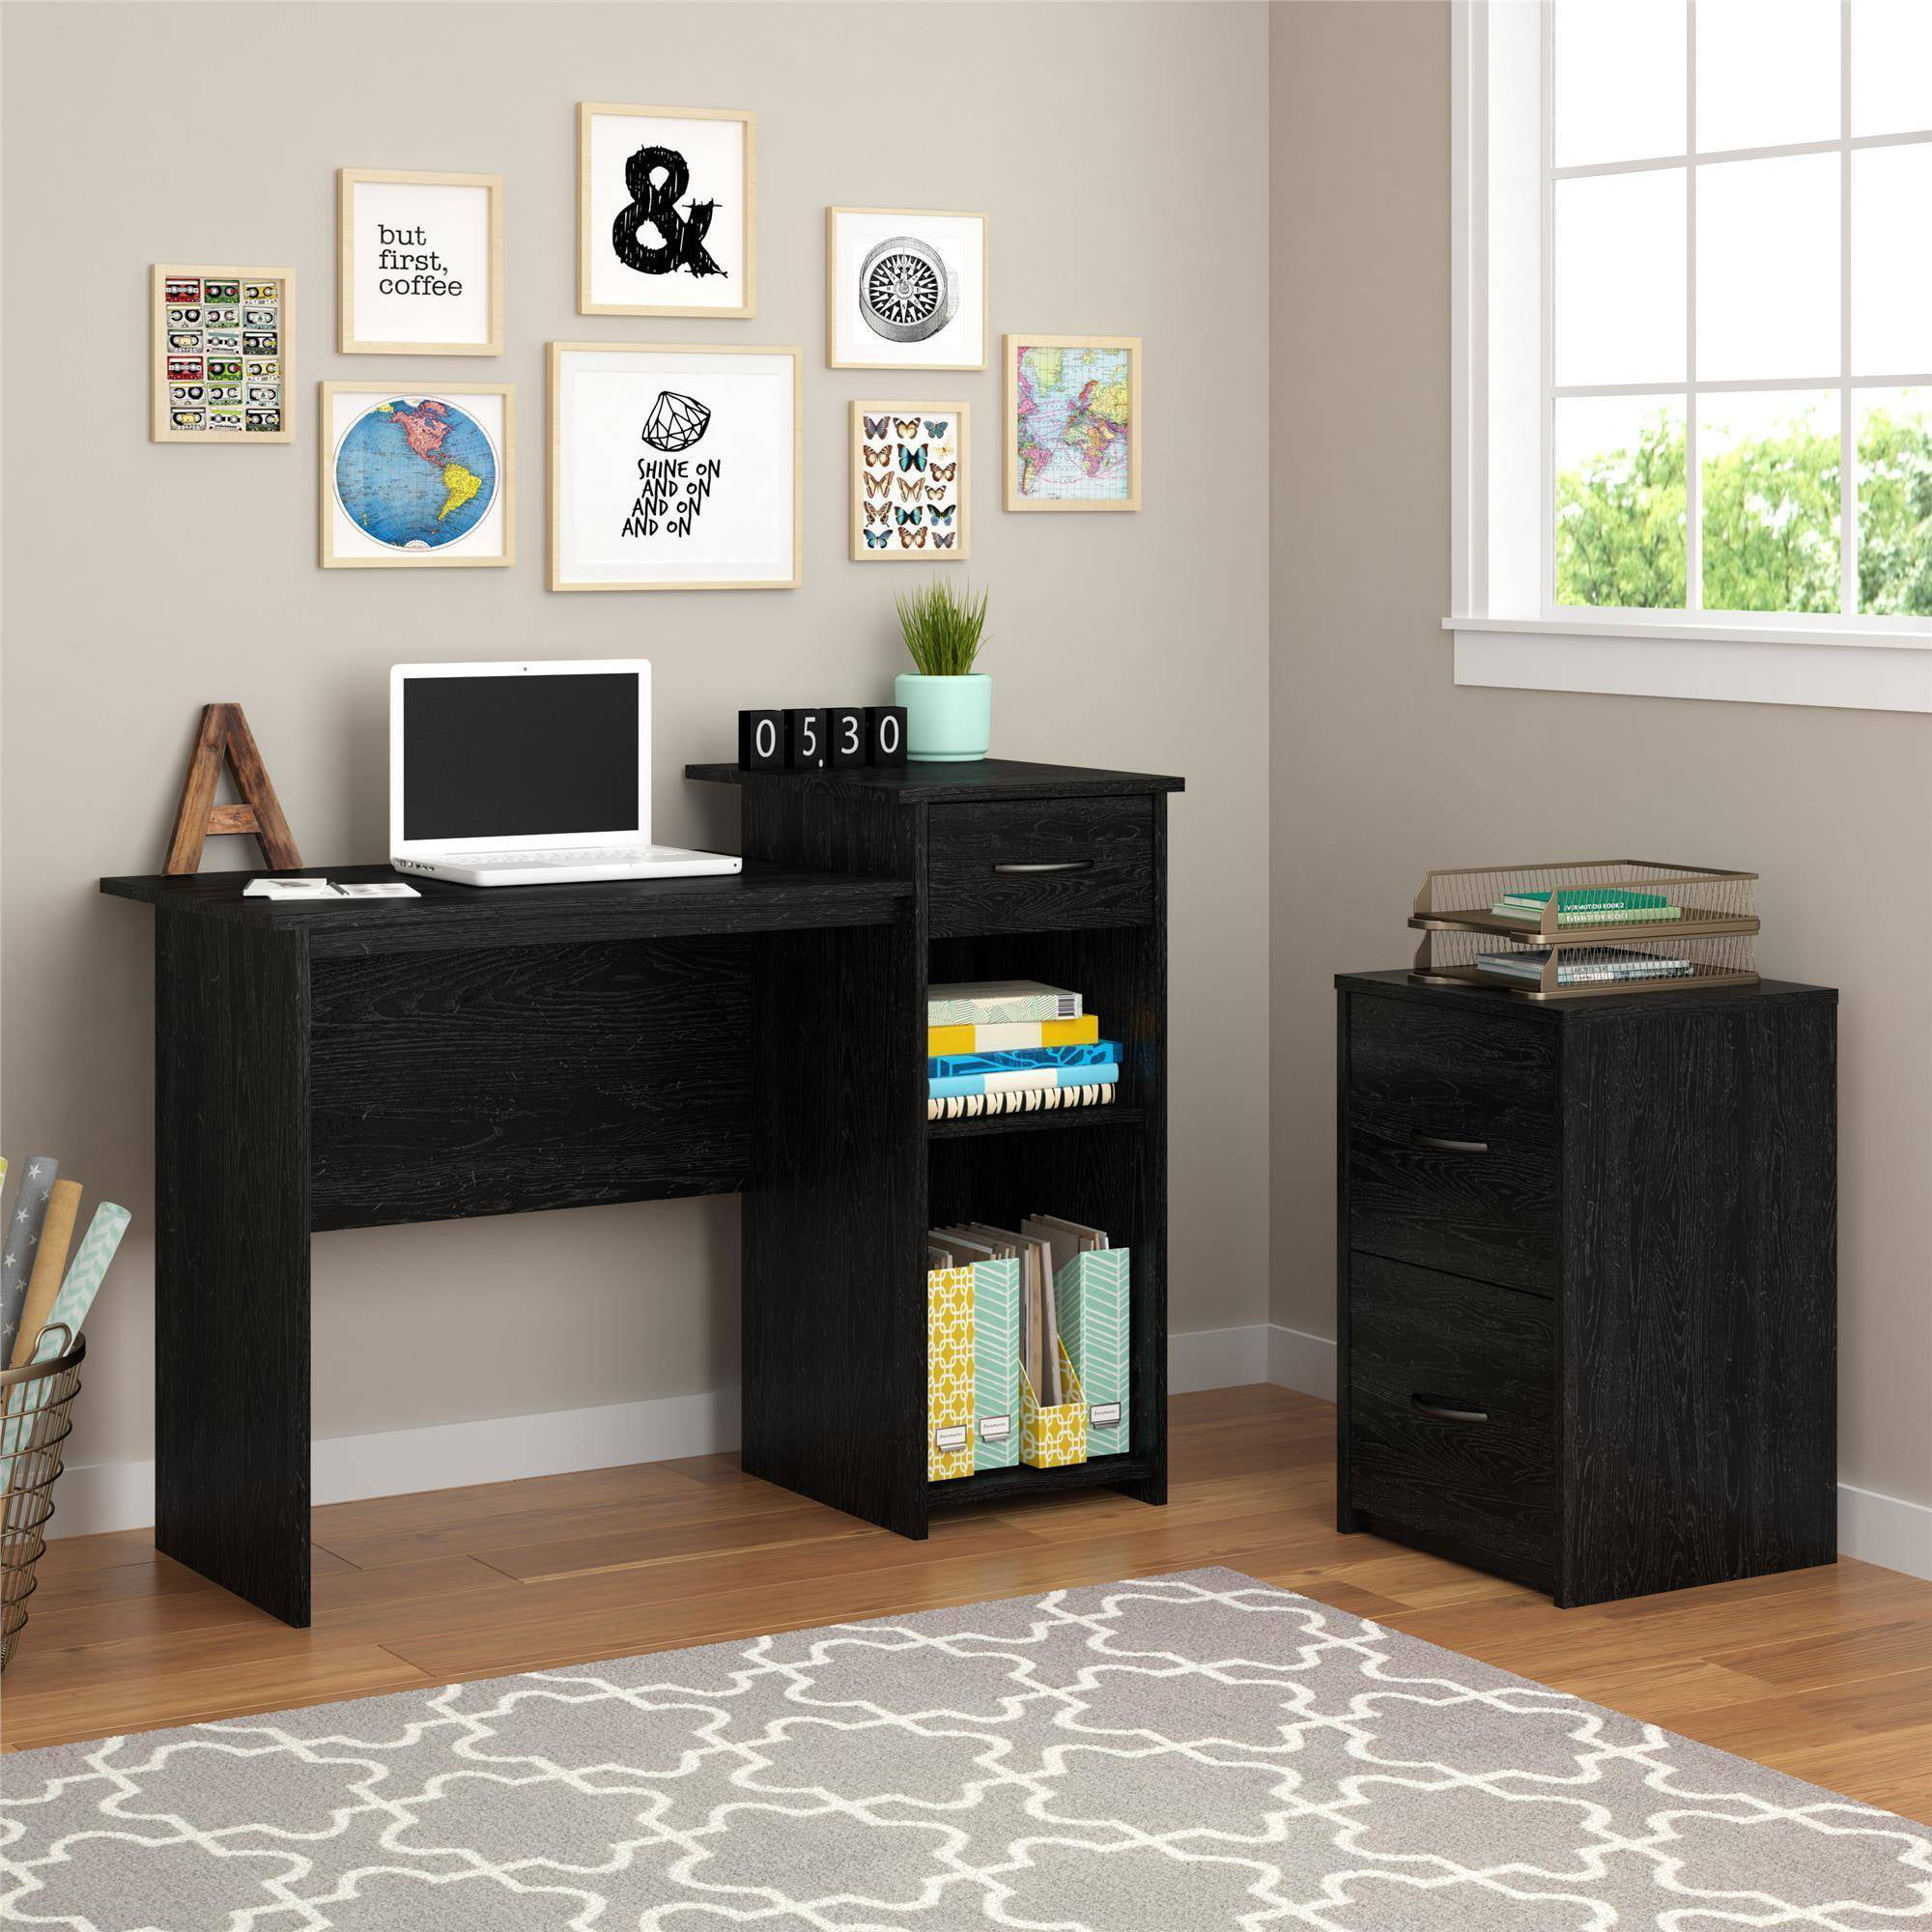 mainstays student desk with your choice office chair walmart com rh walmart com mainstays student desk instructions mainstays student desk multiple finishes